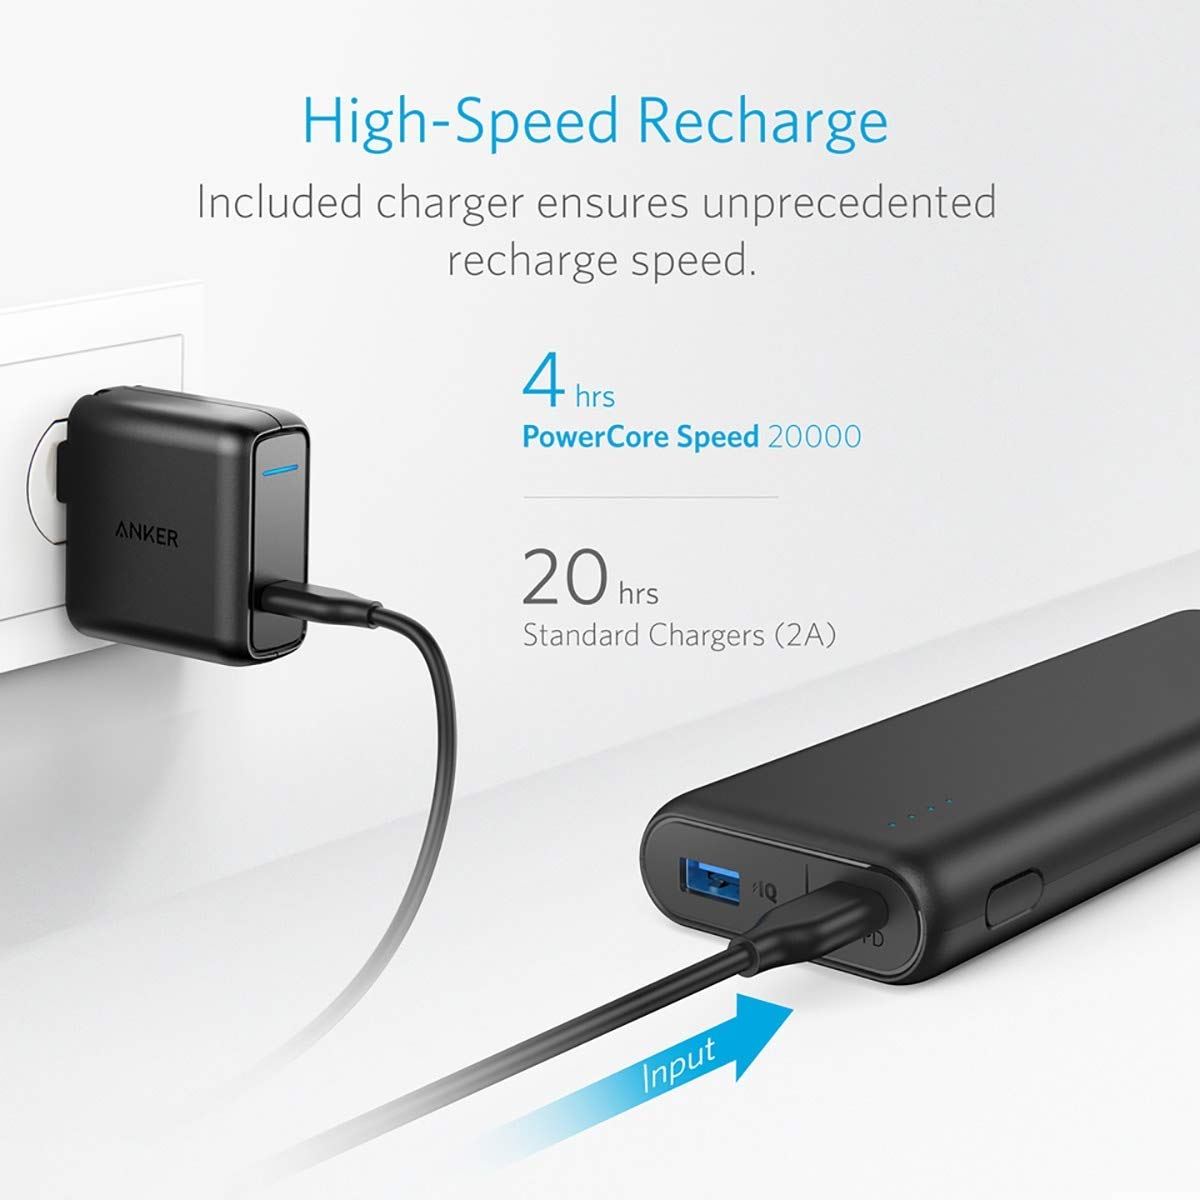 Anker PowerCore Speed 20000 PD Charging Time